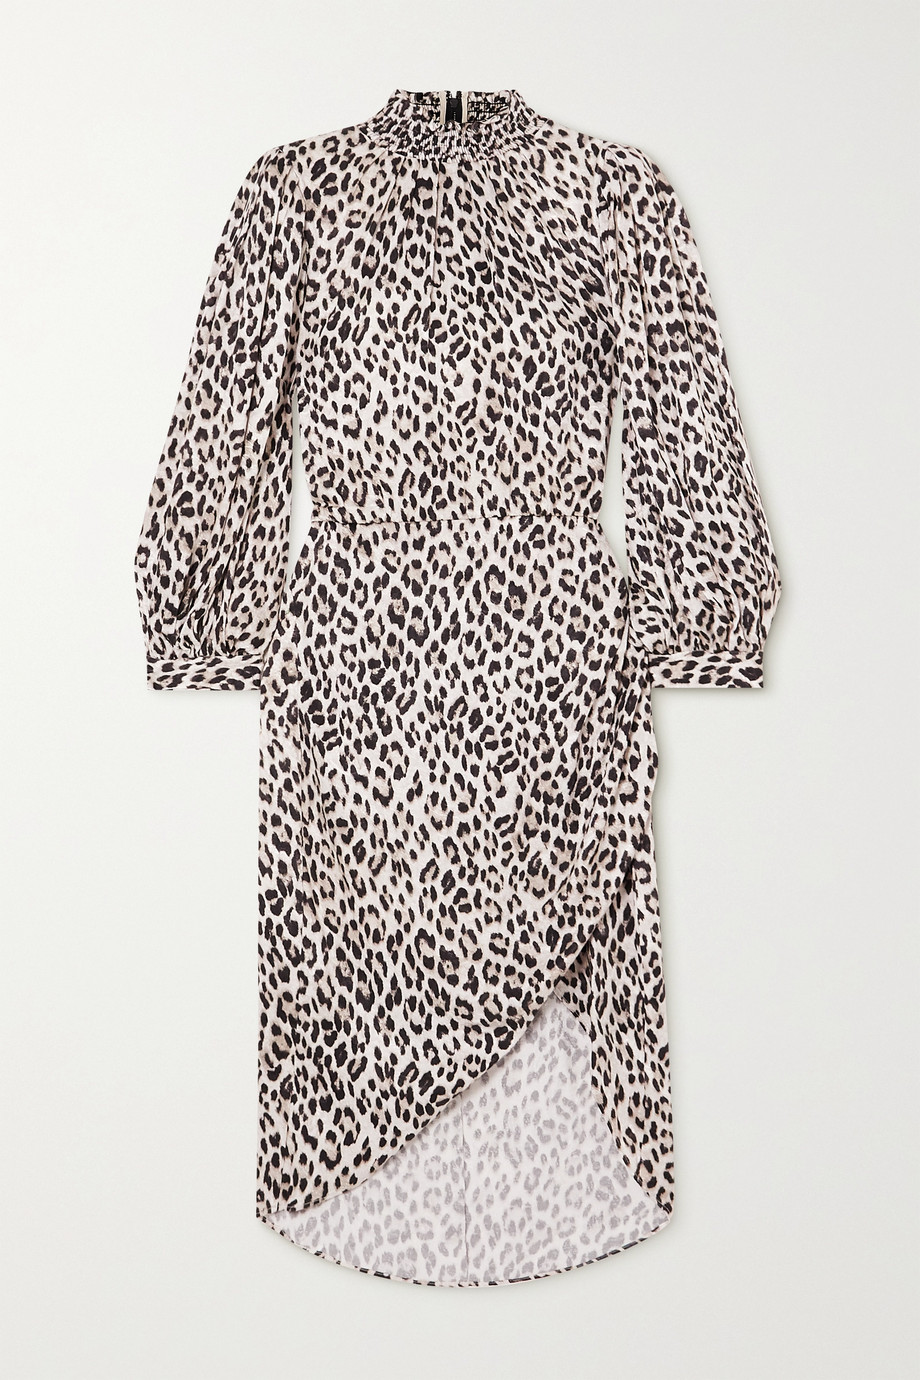 Alice + Olivia Jerilyn ruffled leopard-print jacquard dress